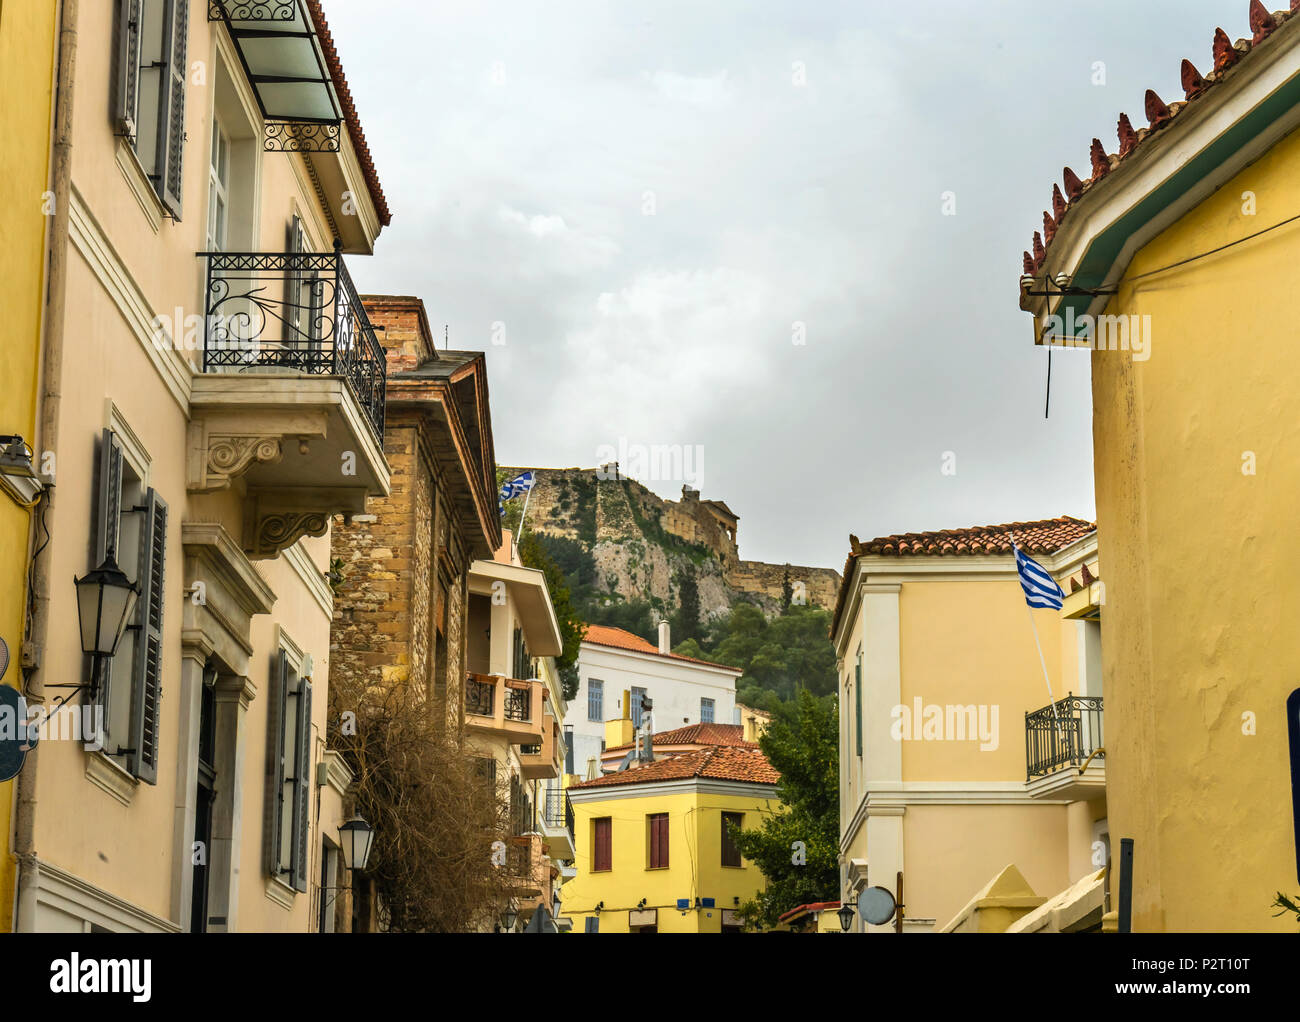 Plaka Ancient Greek Neighborhoods and Shopping Streets Next To Acropolis Athens Greece. - Stock Image